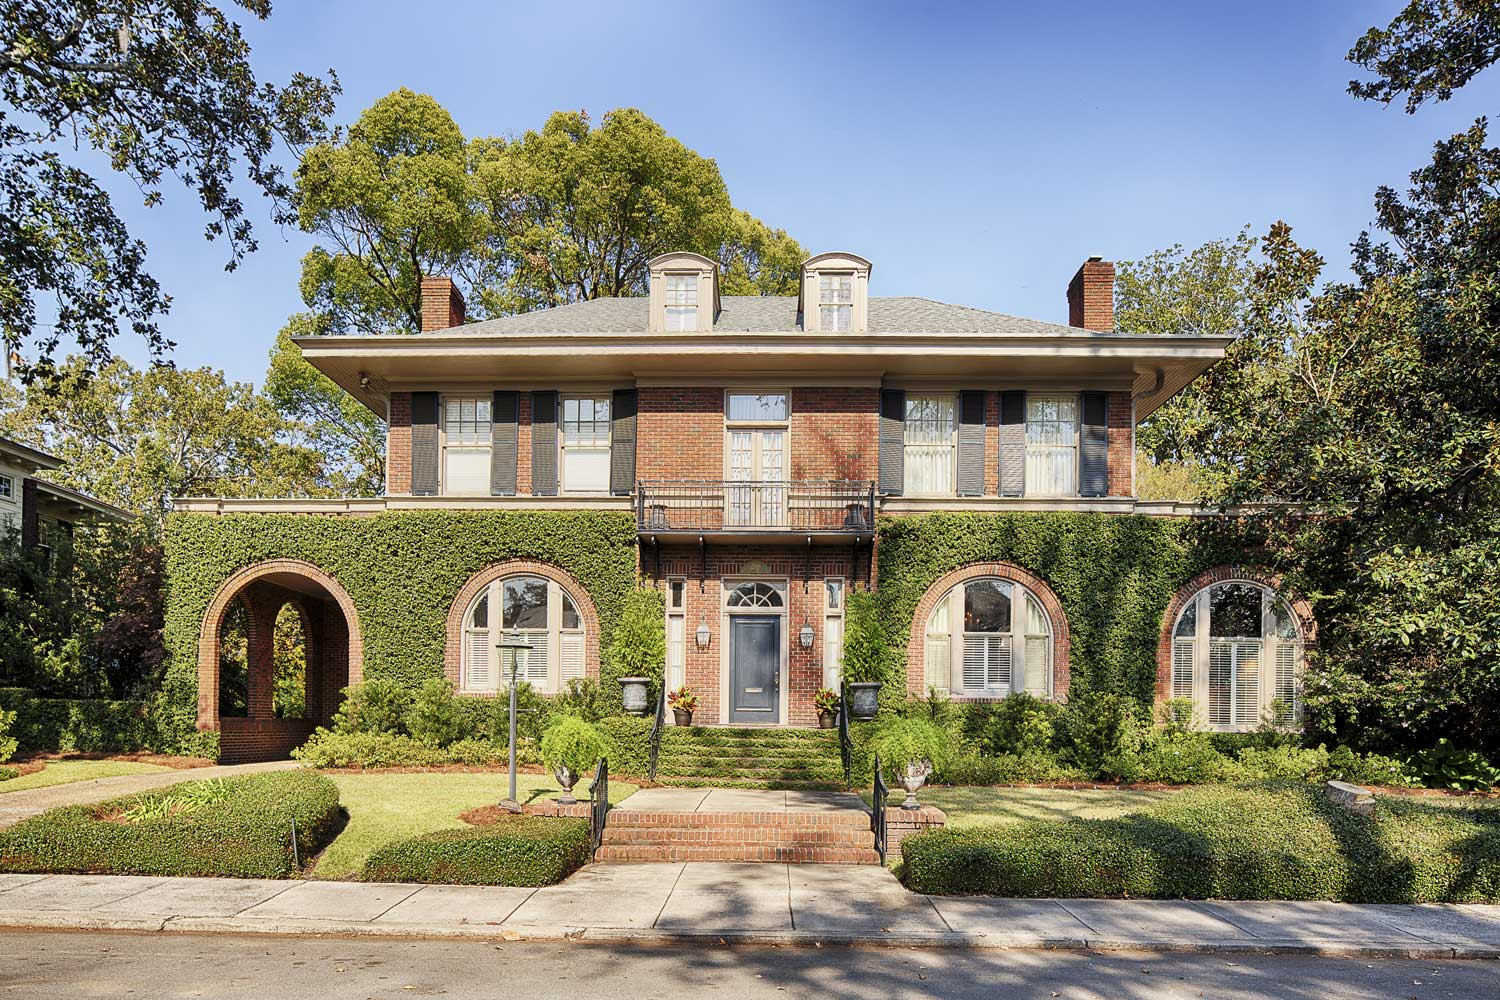 <b>Savannah, Georgia</b><br/><i>4 Bedrooms, 4,486 sq. ft.</i><br/>Ardsley Park mansion